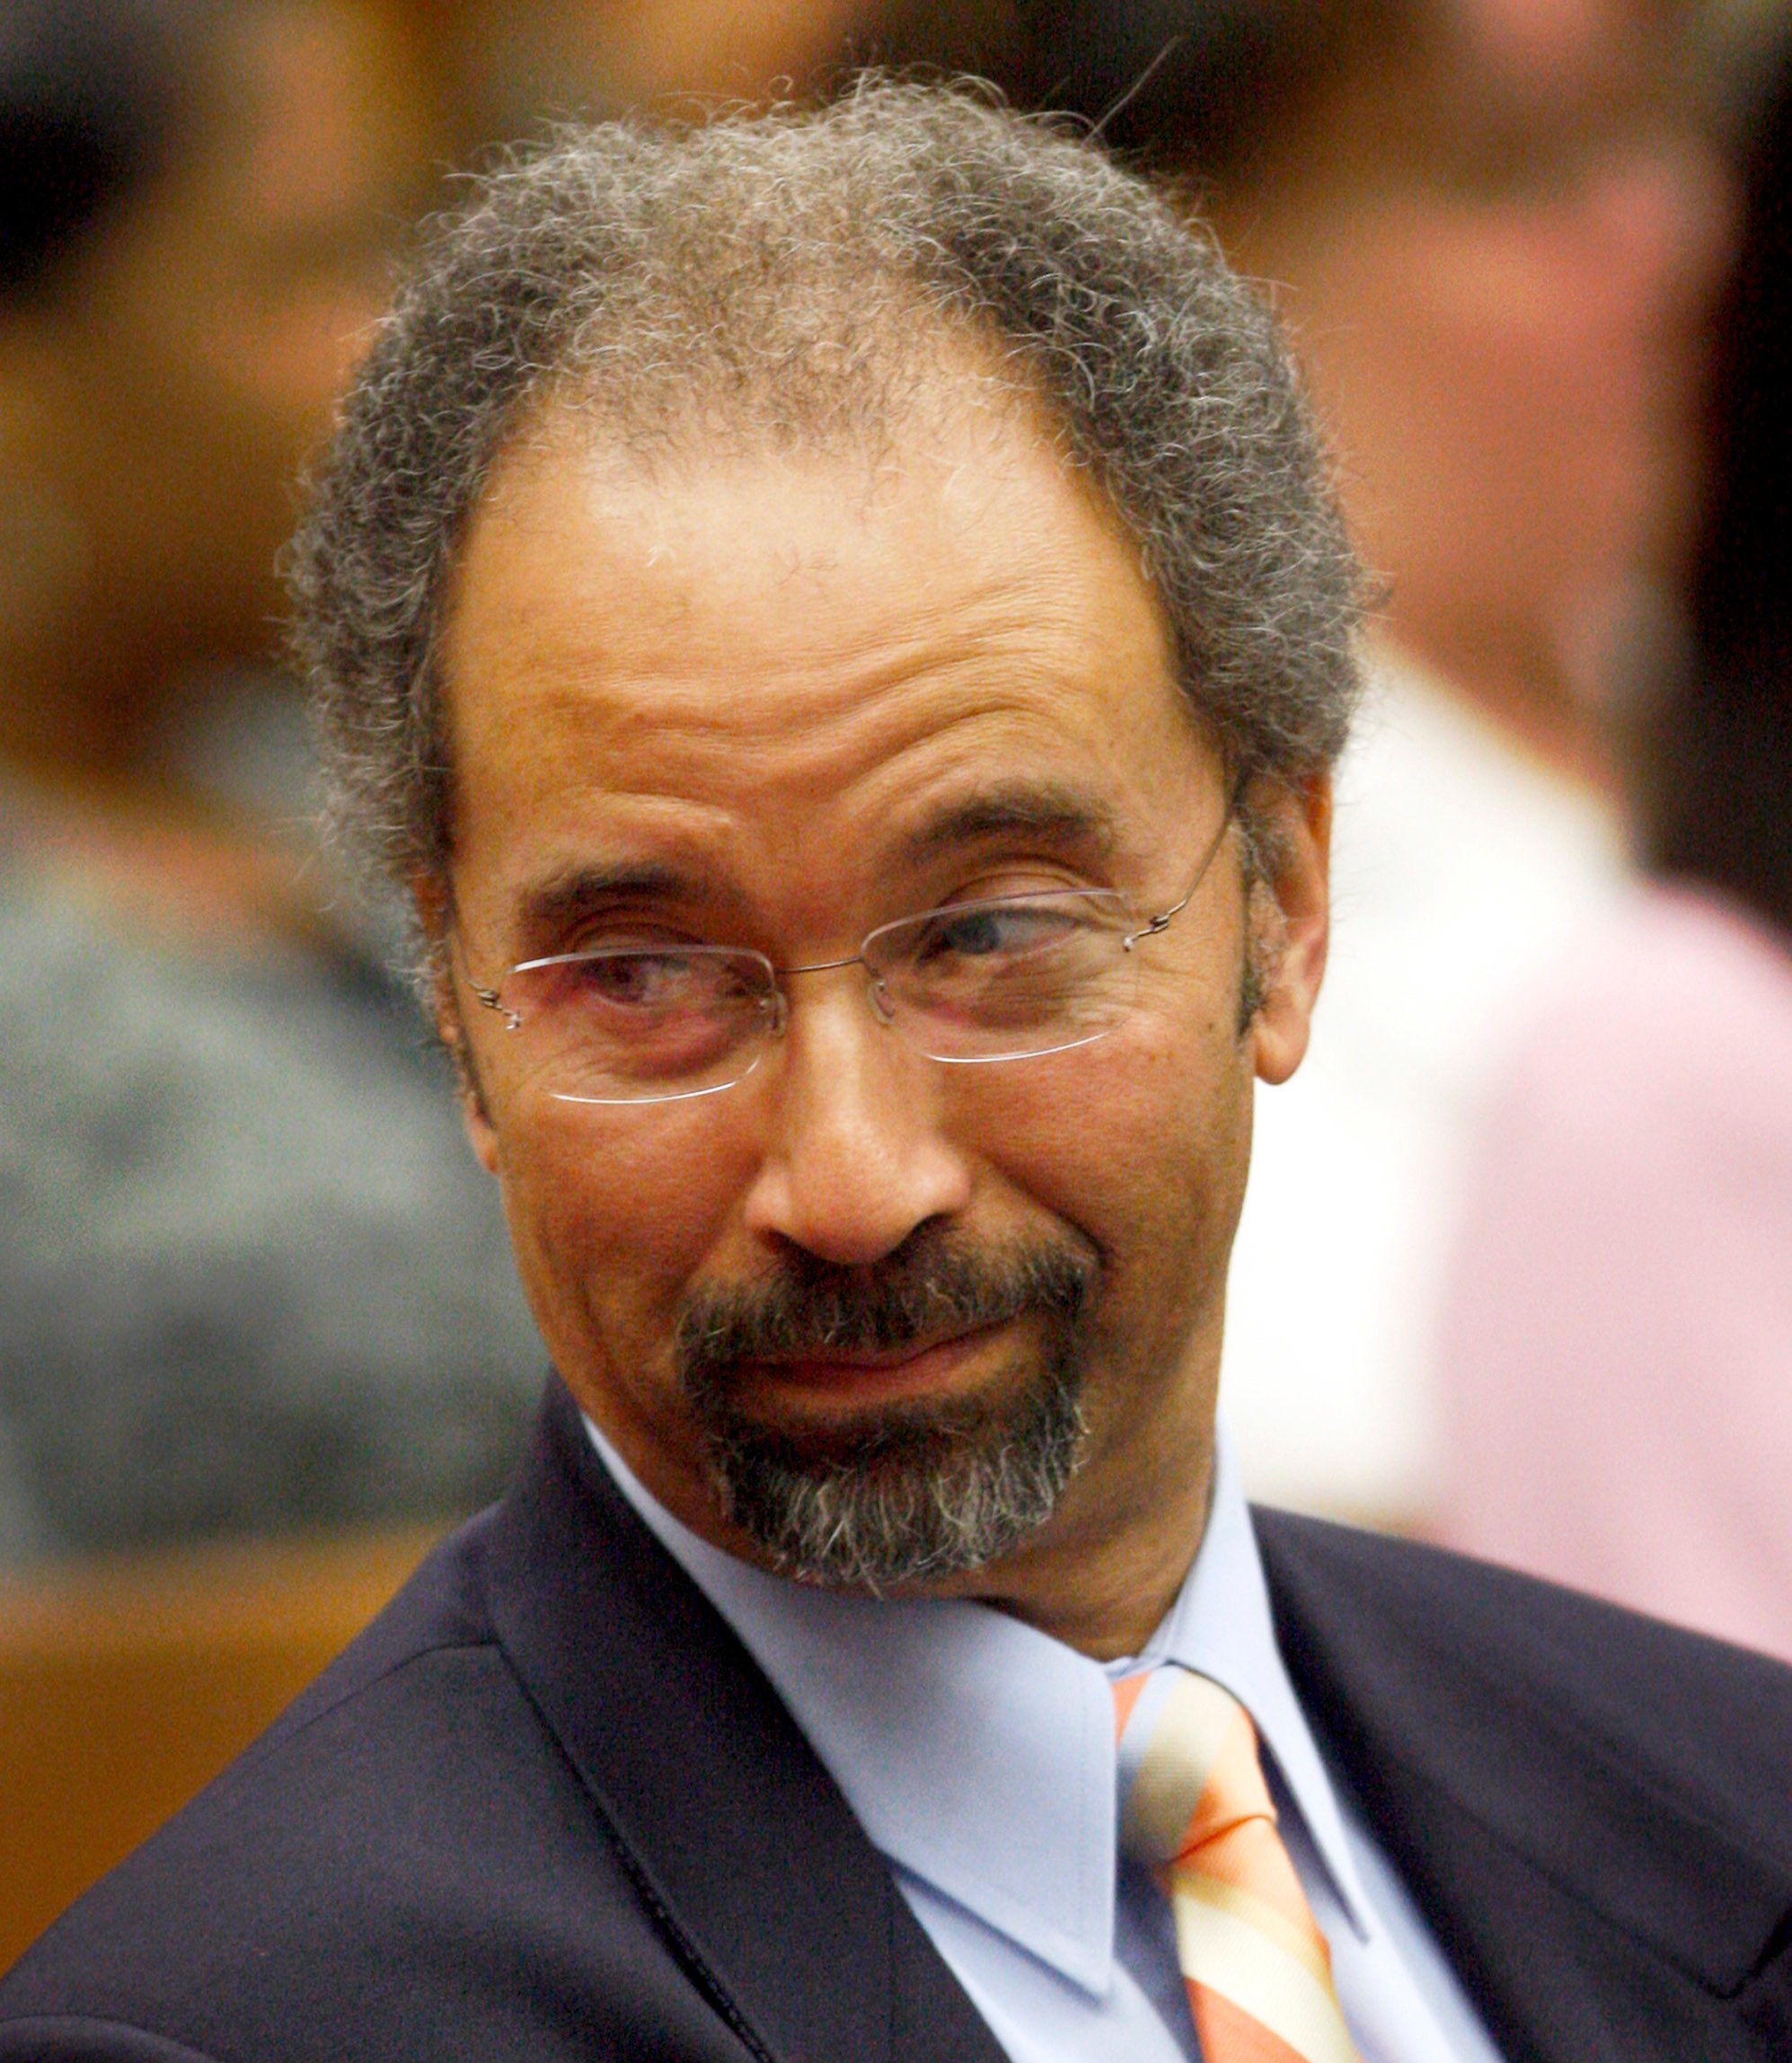 How One of DC's Most Powerful Judges Got Accused of Rape